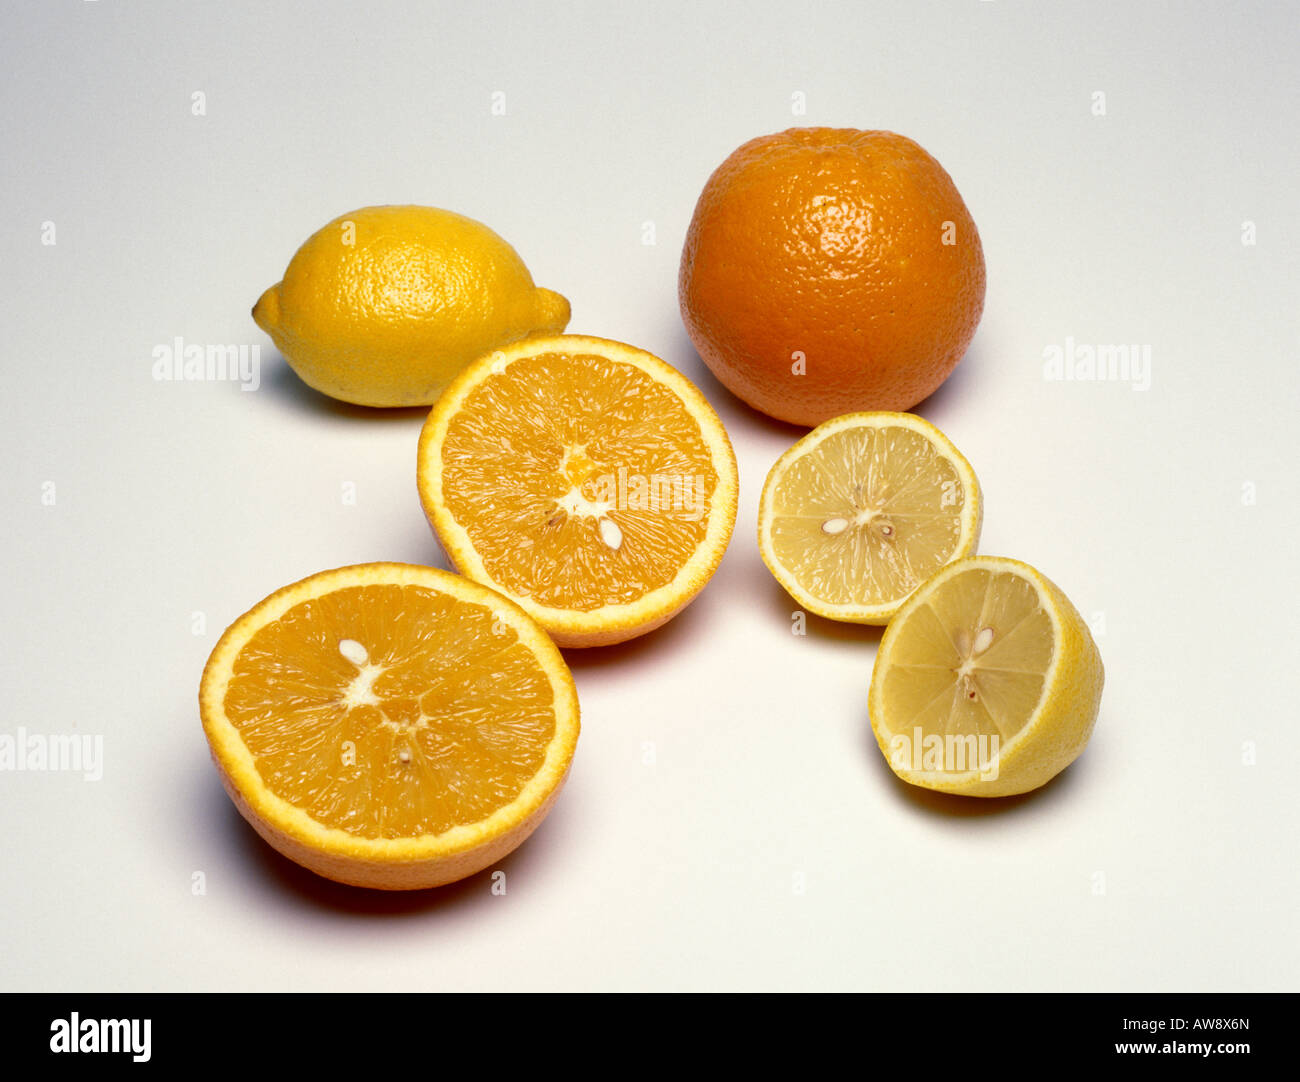 A whole orange and a whole lemon beside a lemon cut in half and an orange cut in half - Stock Image